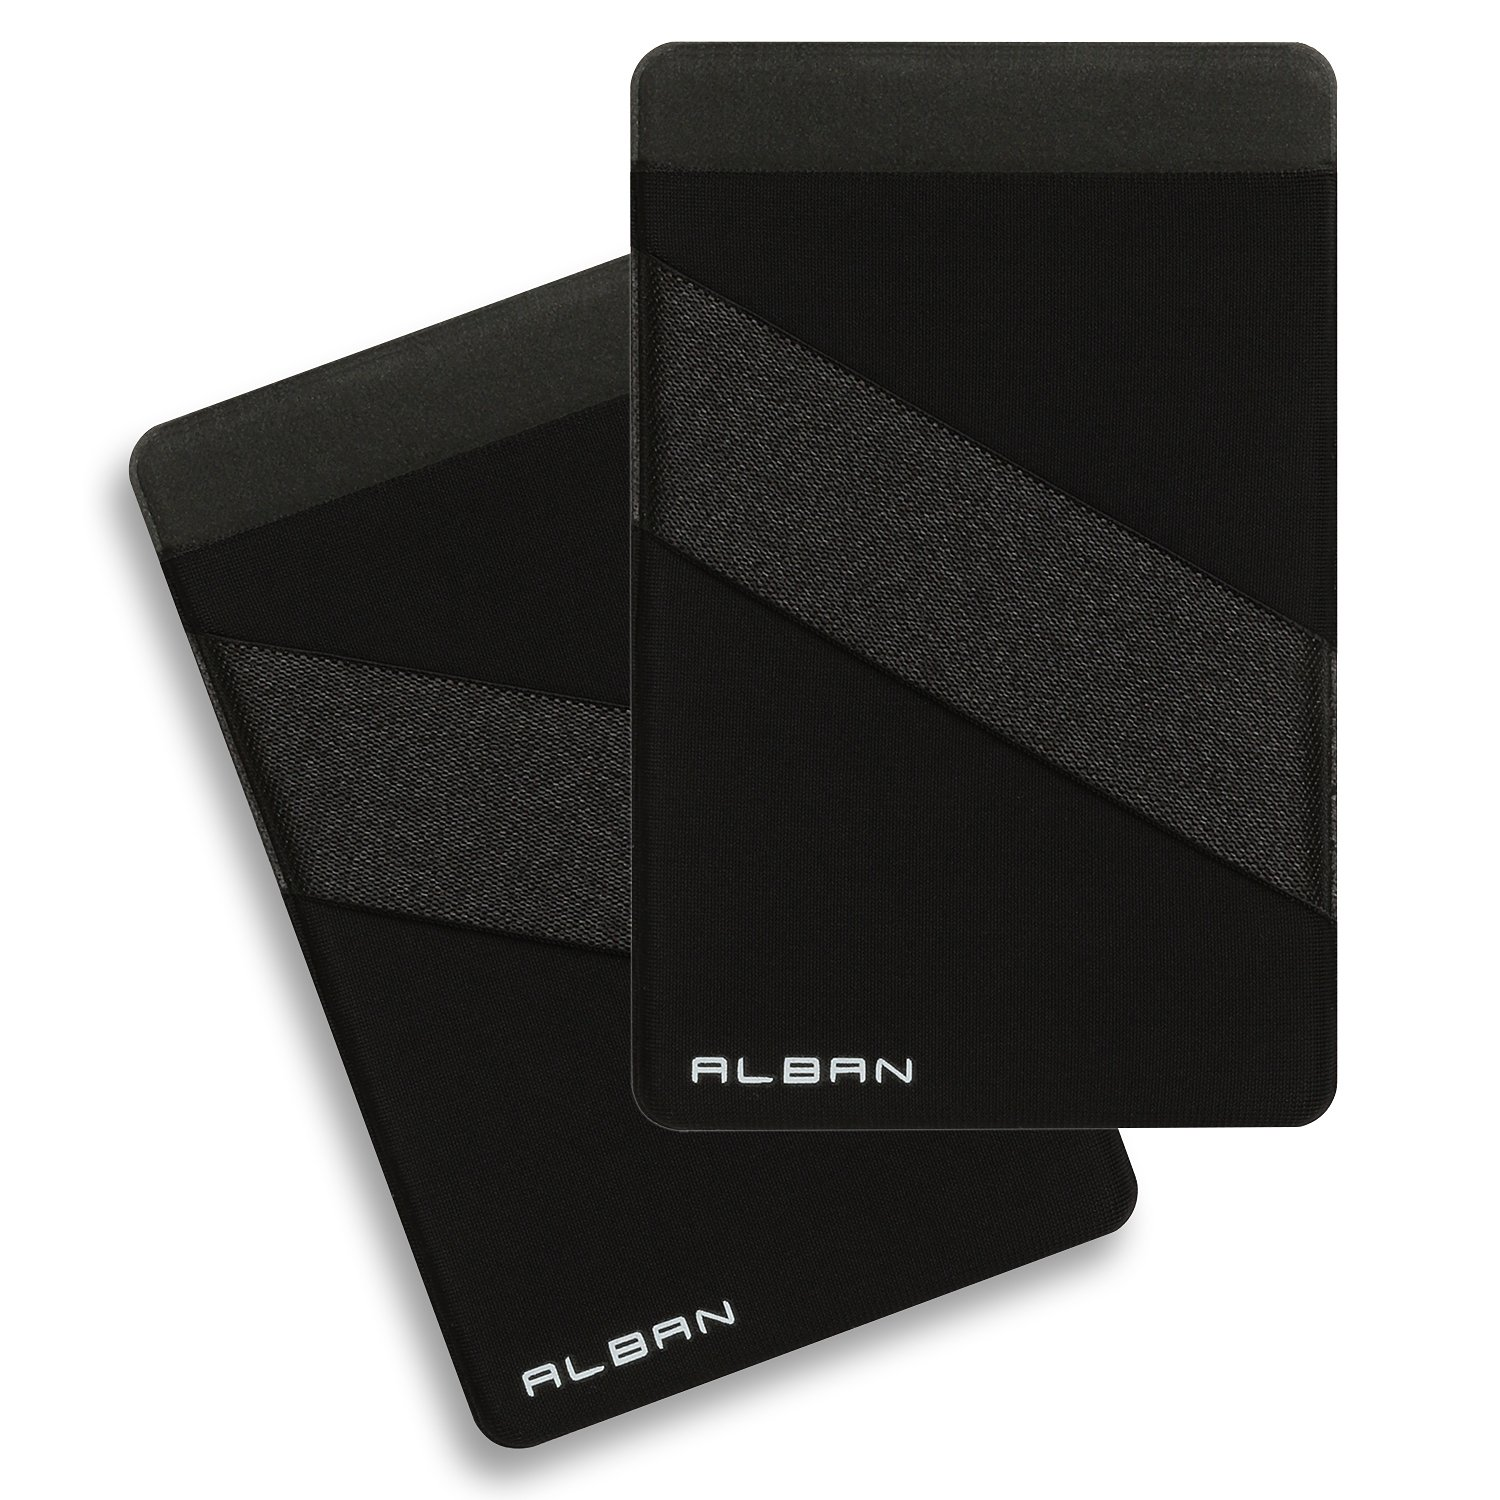 Alban 2 Pack Stick on Cell Phone Credit Card Holder RFID Blocking with Strap - Black Right Hand